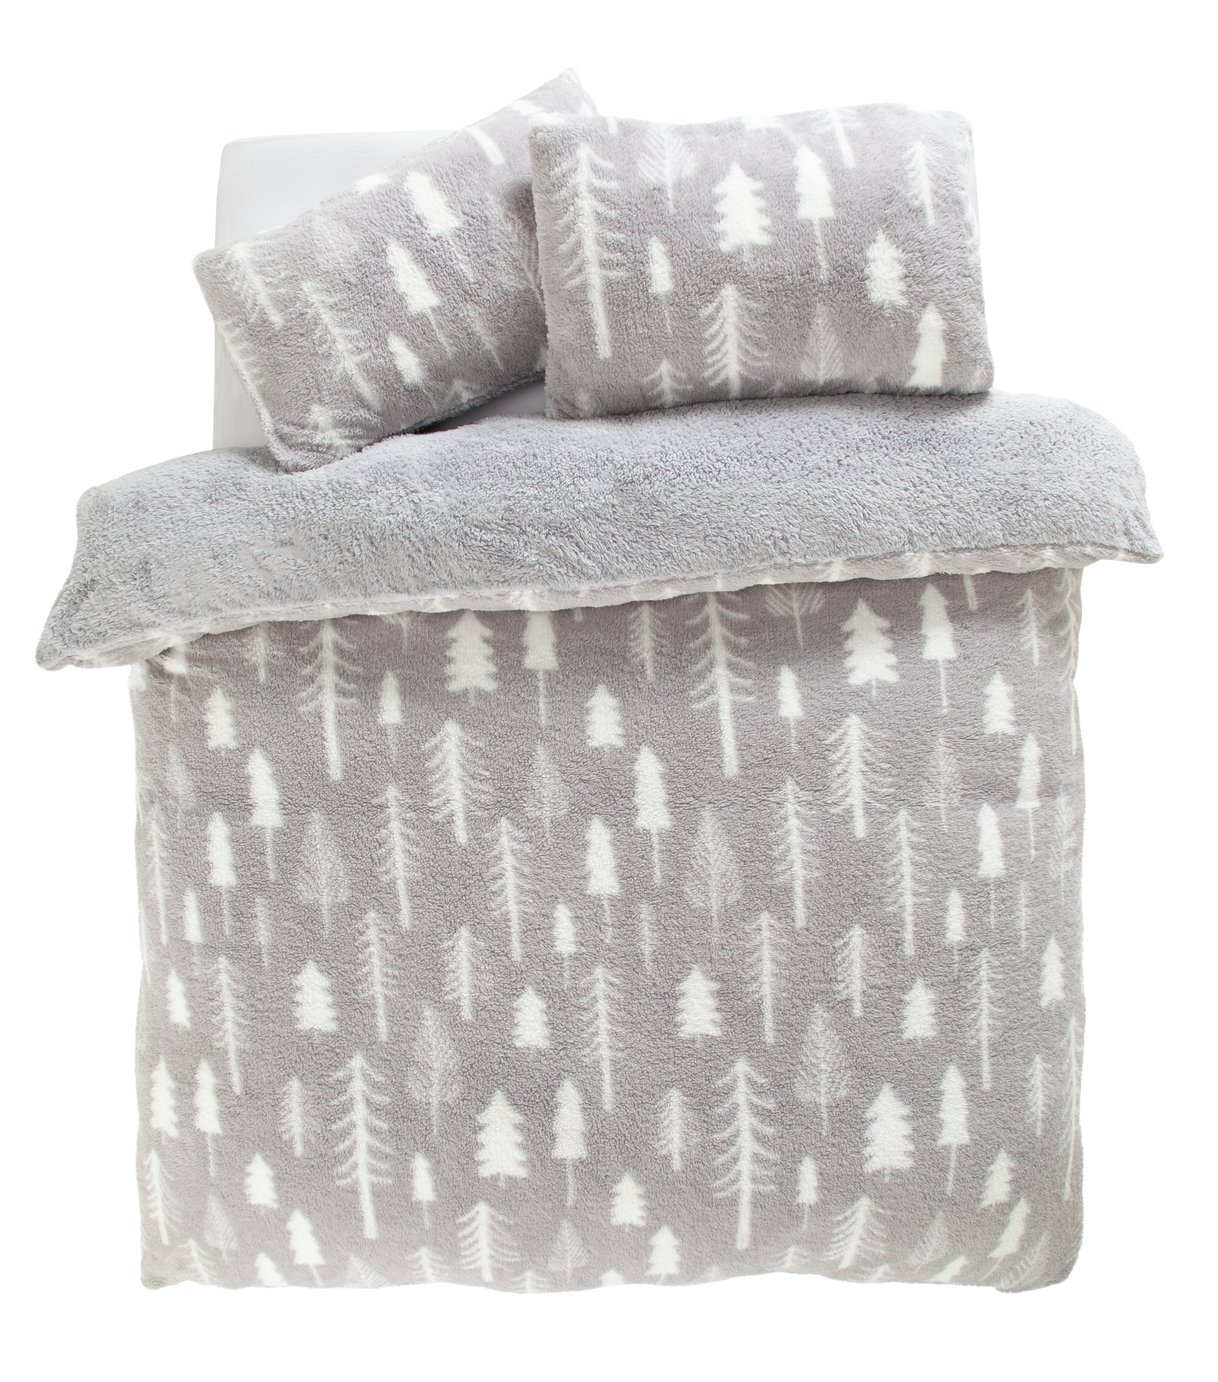 Argos Home Teddy Fleece Trees Bedding Set - Double